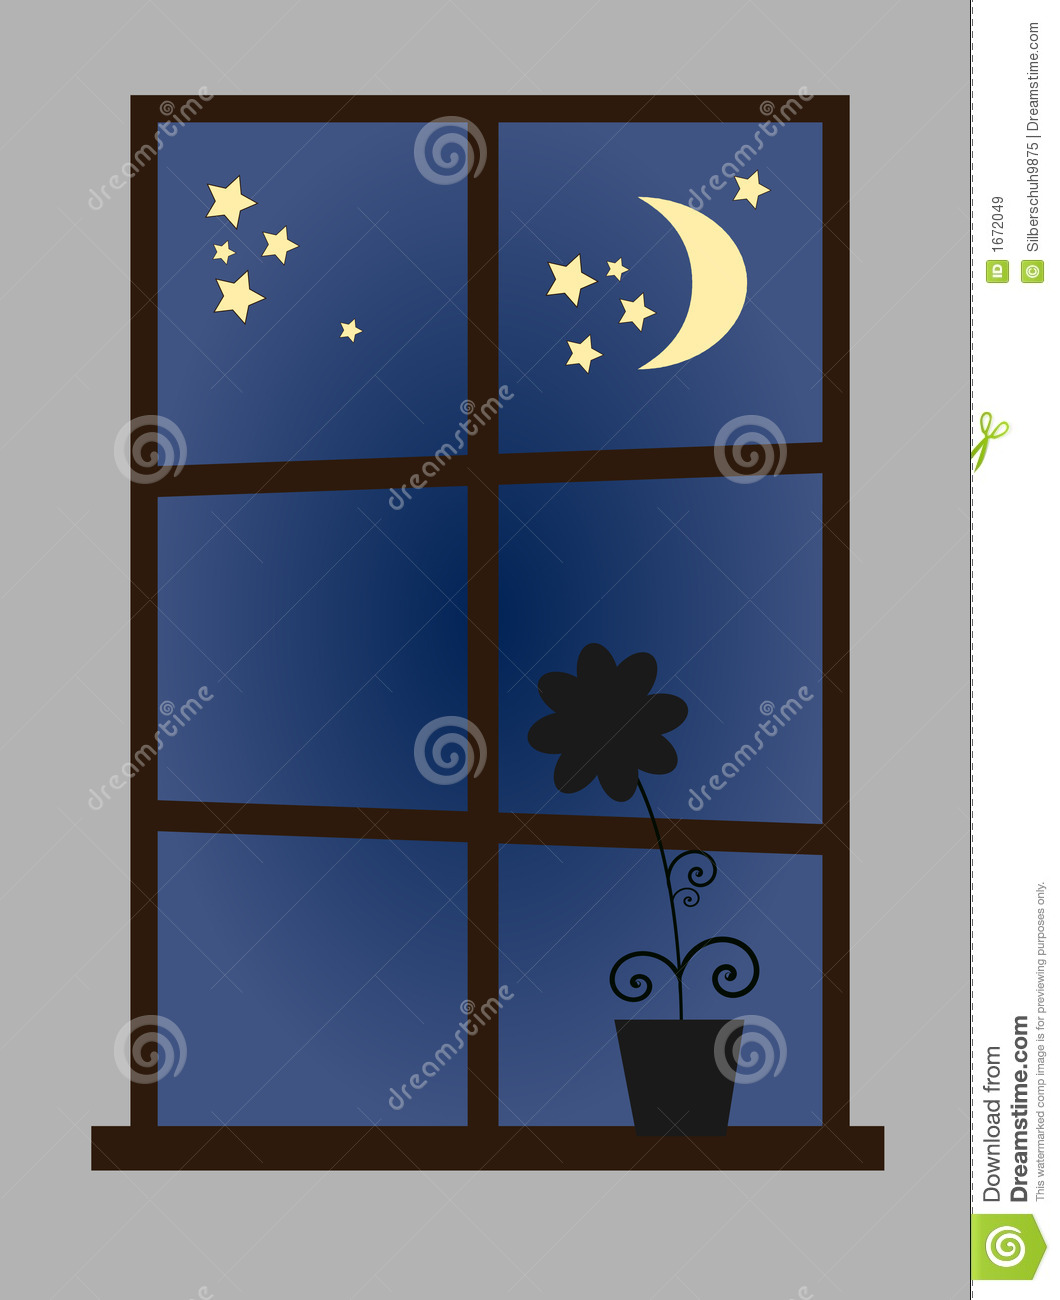 Time window clipart #10